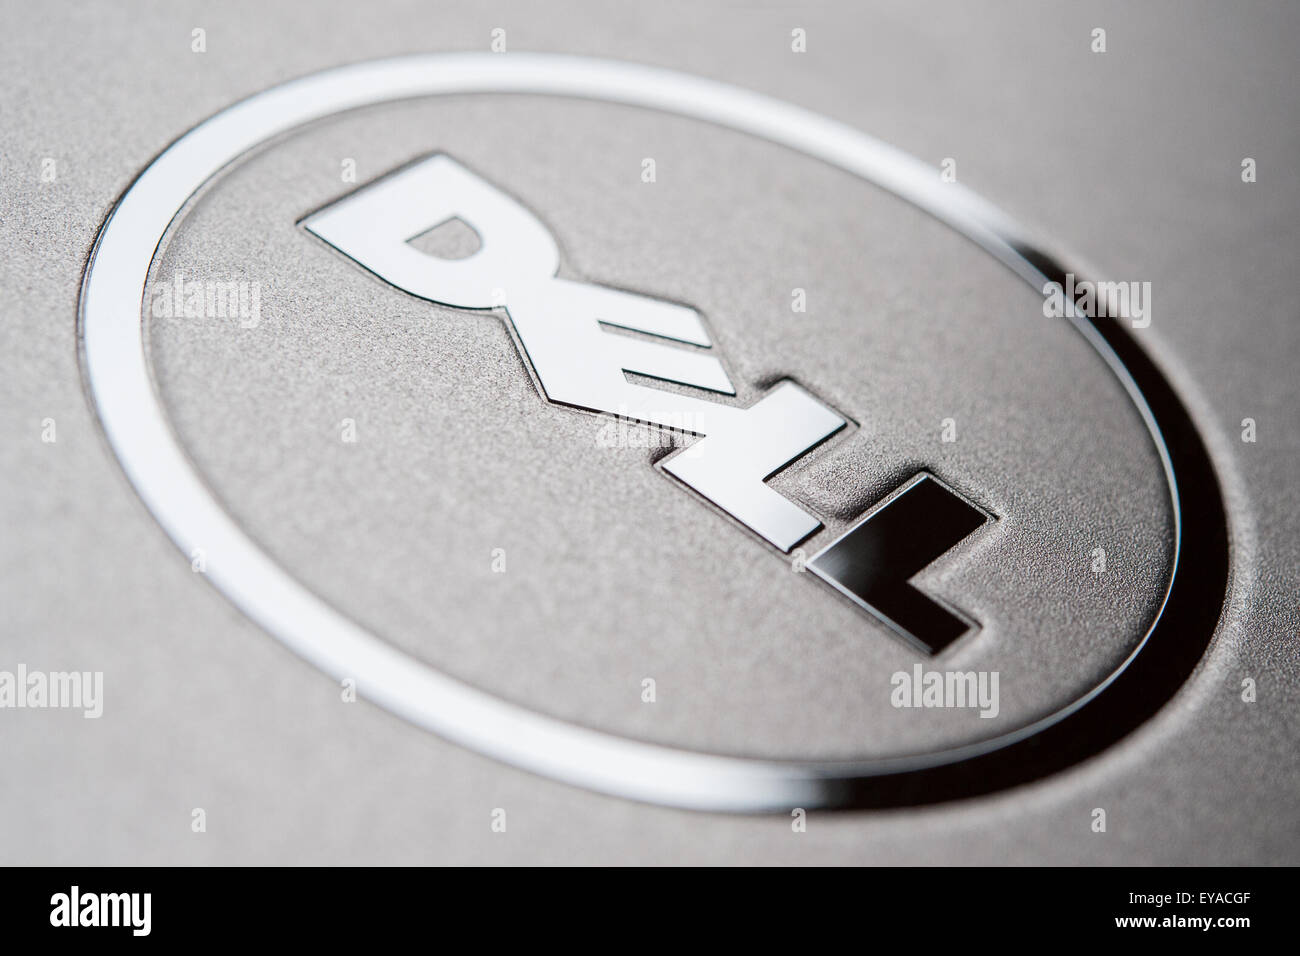 Hannover germany the computer manufacturer dell logo on a laptop hannover germany the computer manufacturer dell logo on a laptop buycottarizona